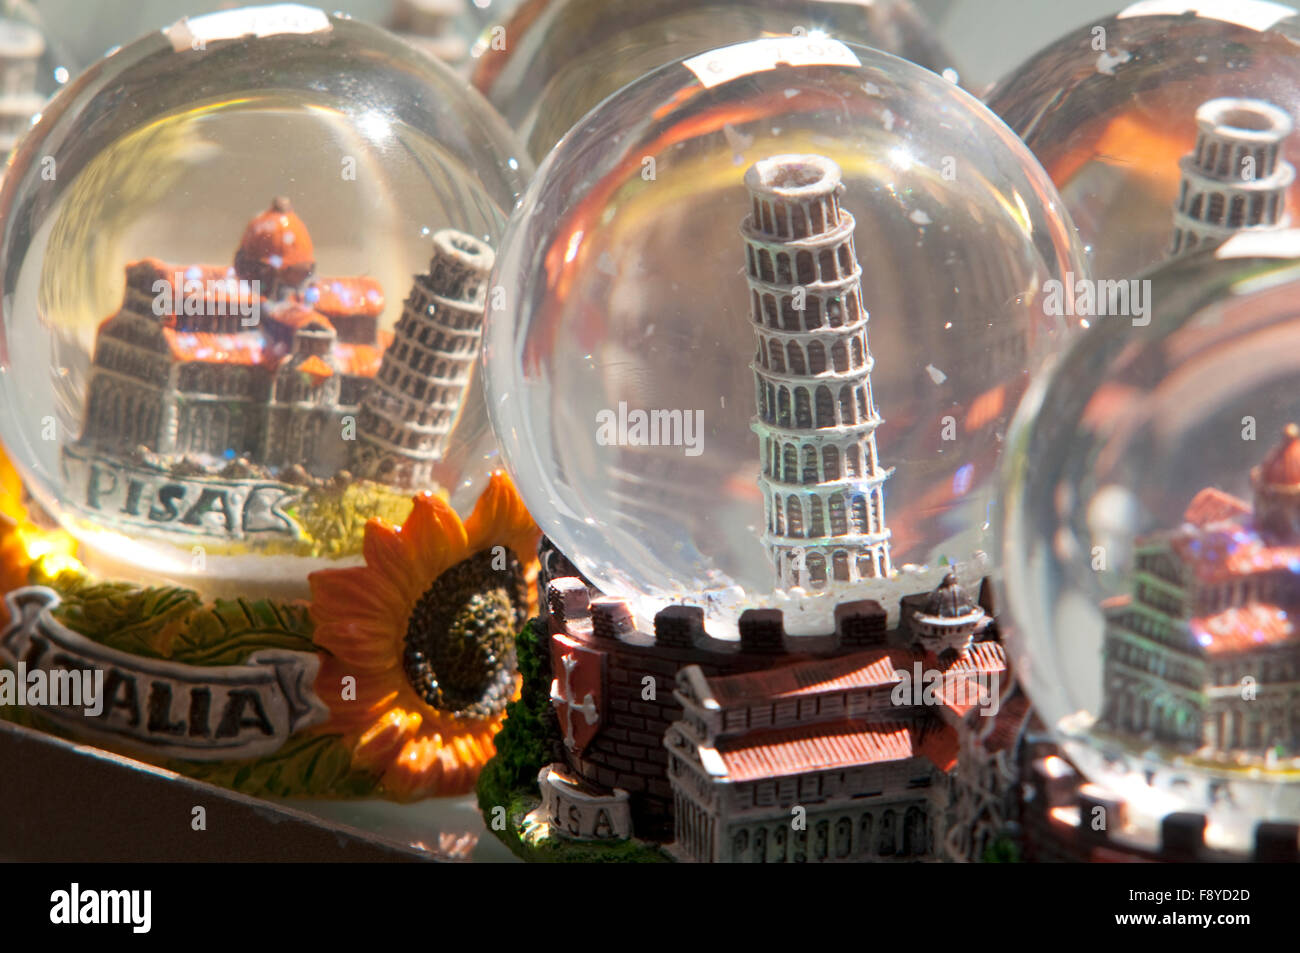 Italy, Tuscany, Pisa, Souvenirs of the Leaning Tower - Stock Image